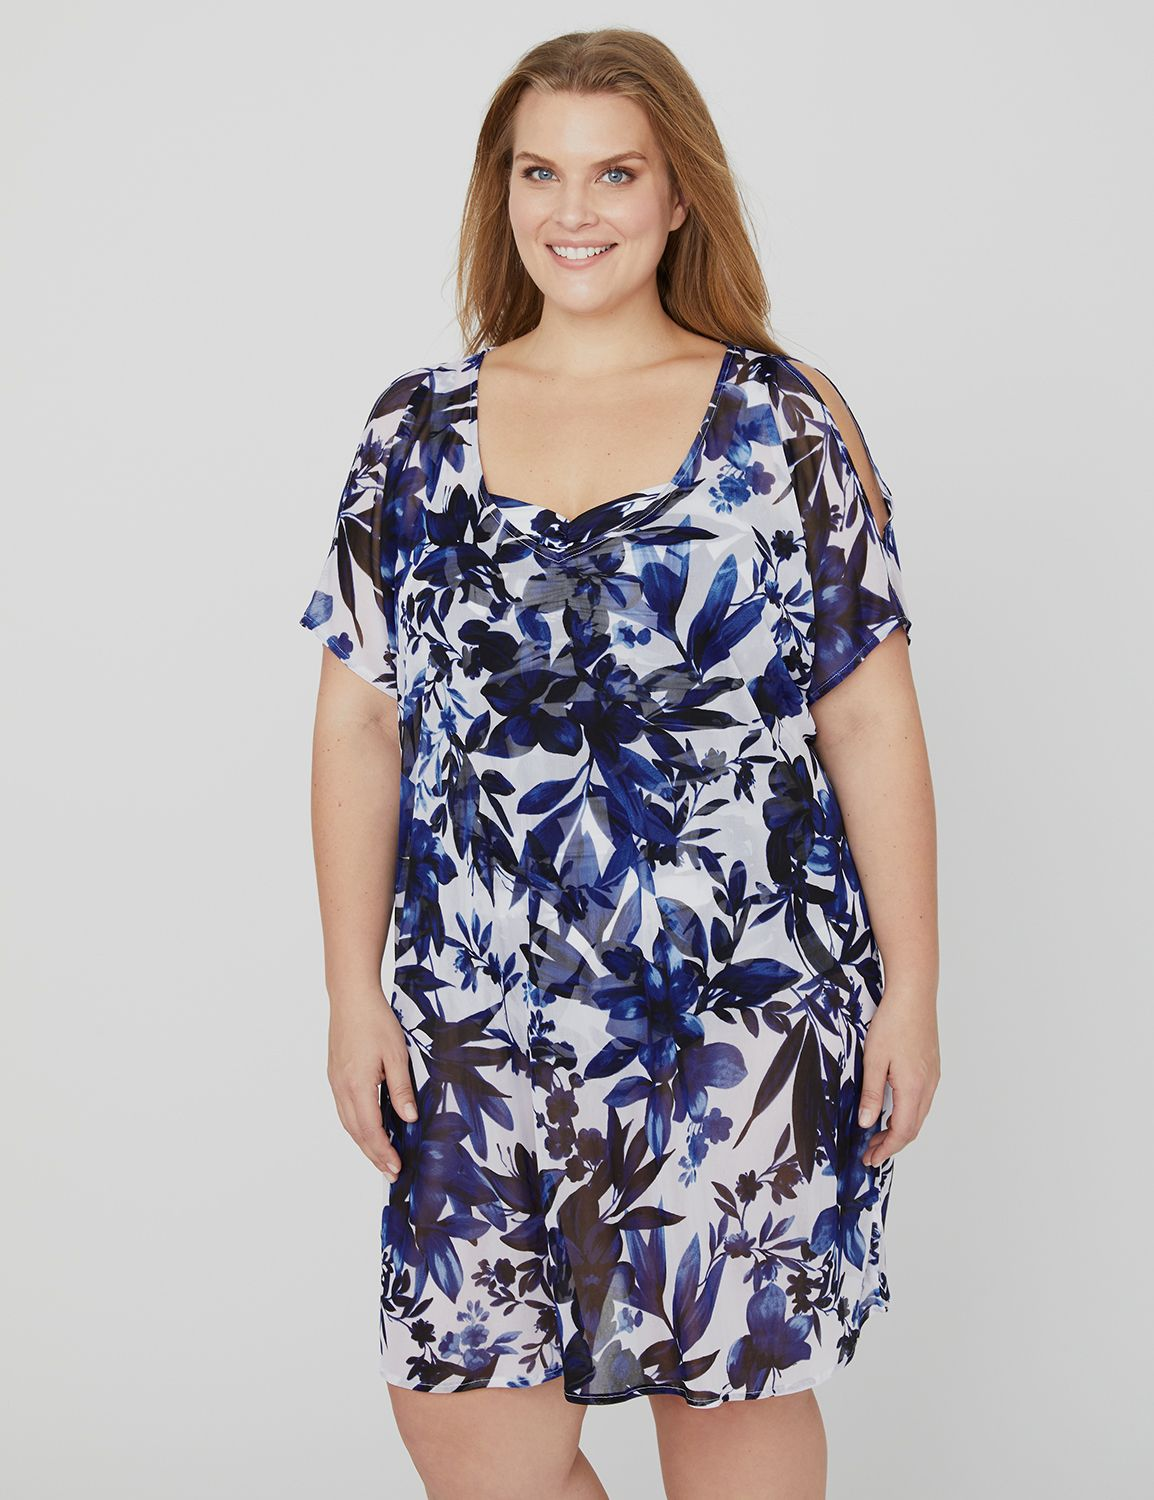 Lakeside Floral Sheer Cover-Up 1088510-Printed Mesh Cover-up MP-300096383